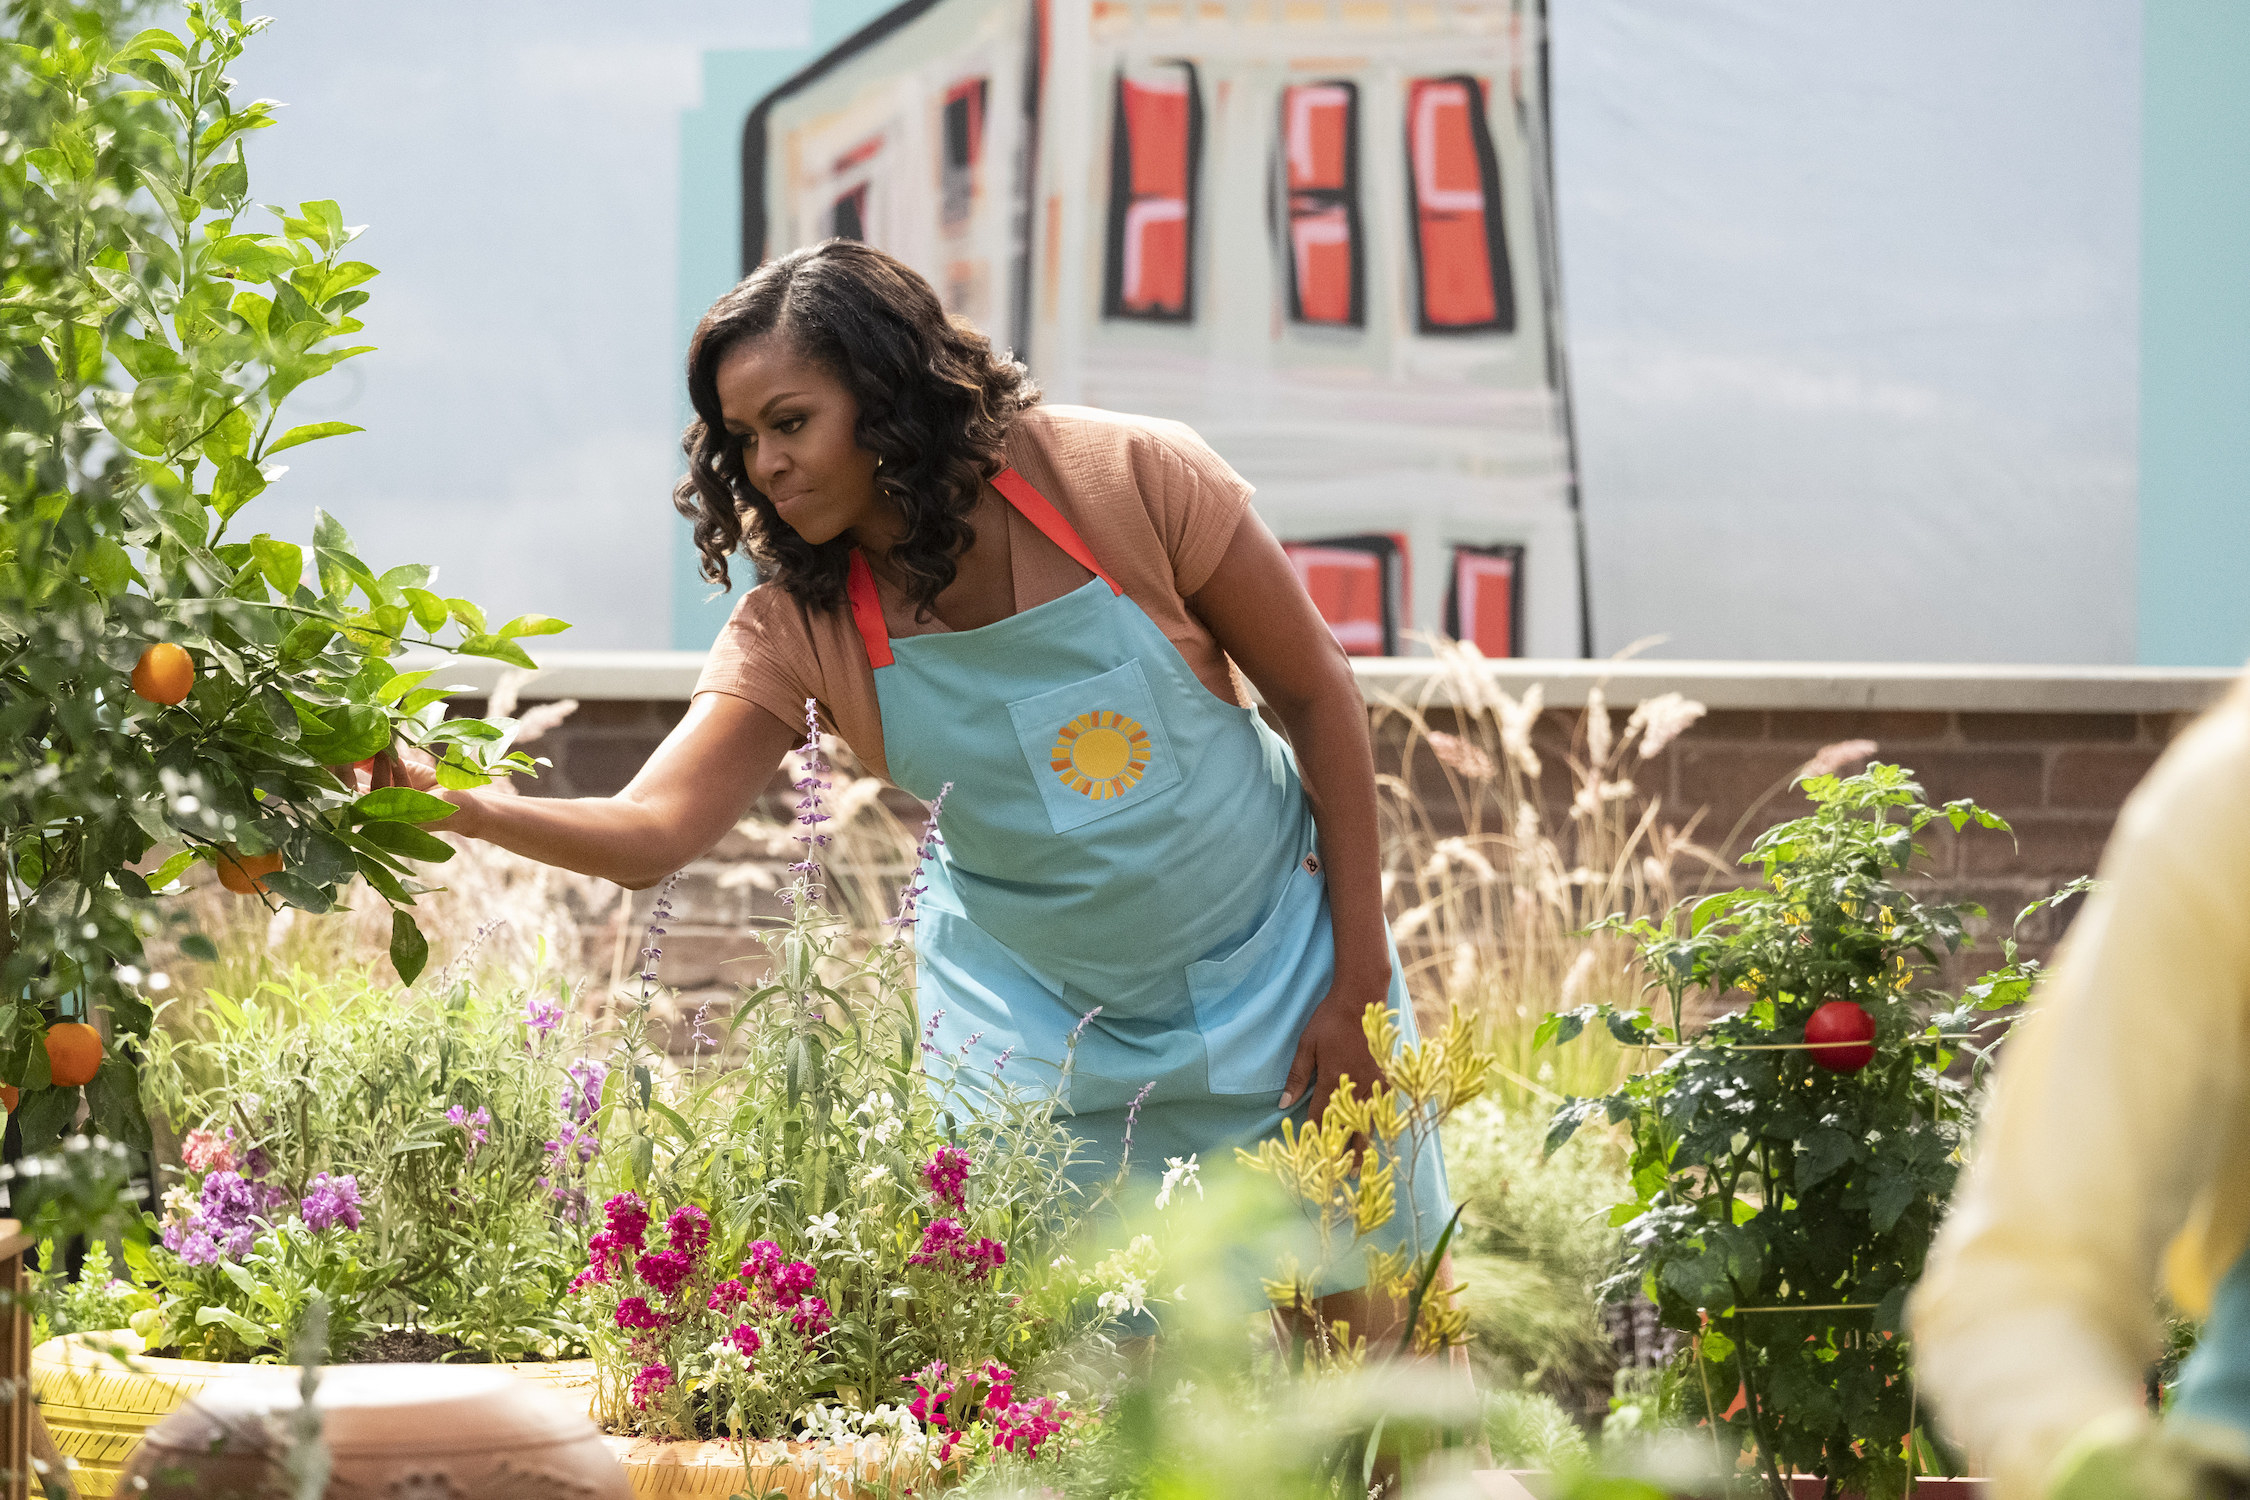 Michelle Obama looks at a plant in a rooftop garden